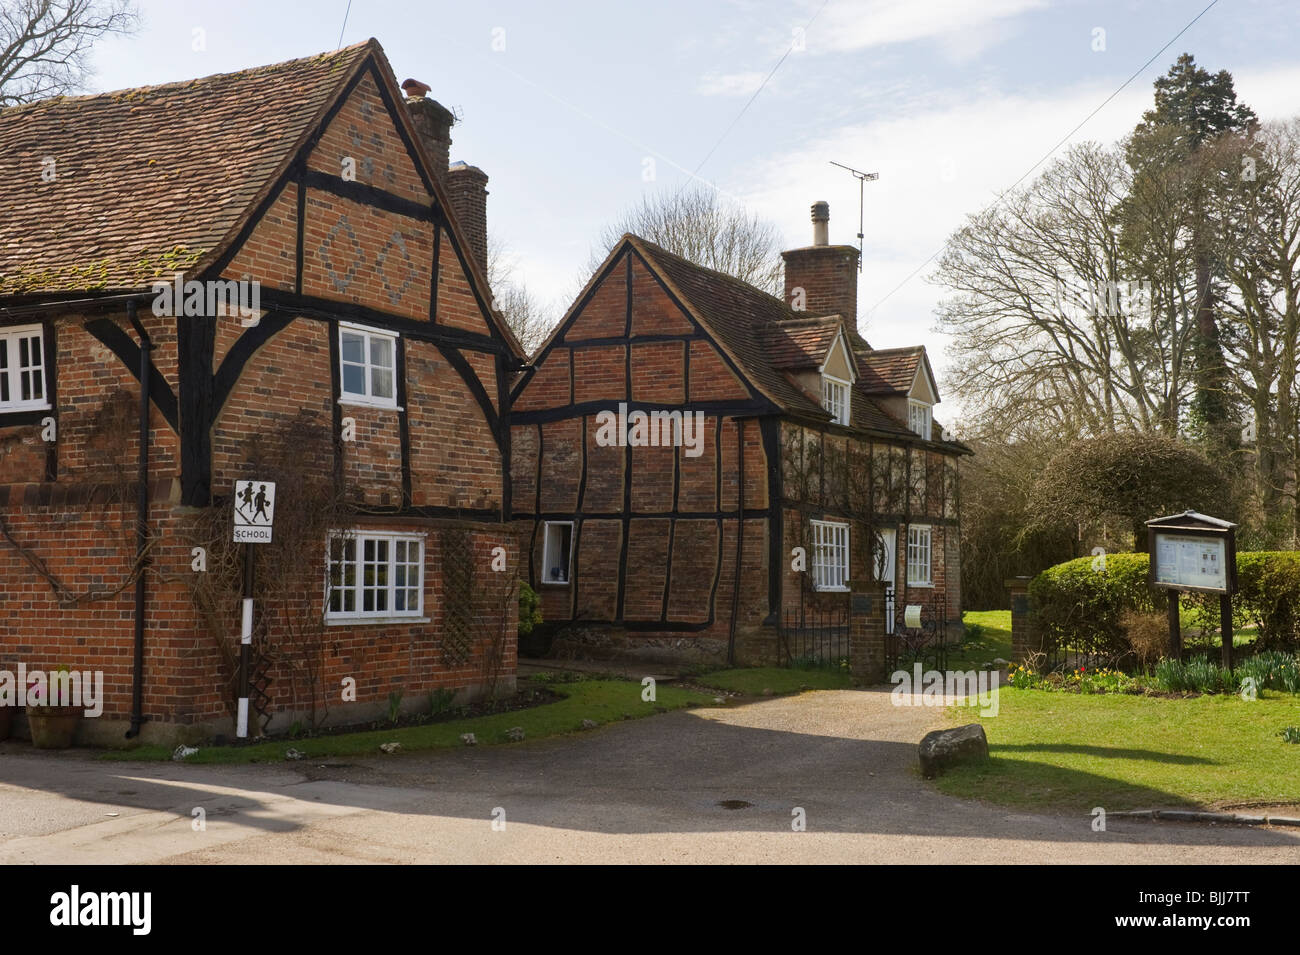 Traditional period red brick built timbered cottages in Turville village Buckinghamshire UK - Stock Image